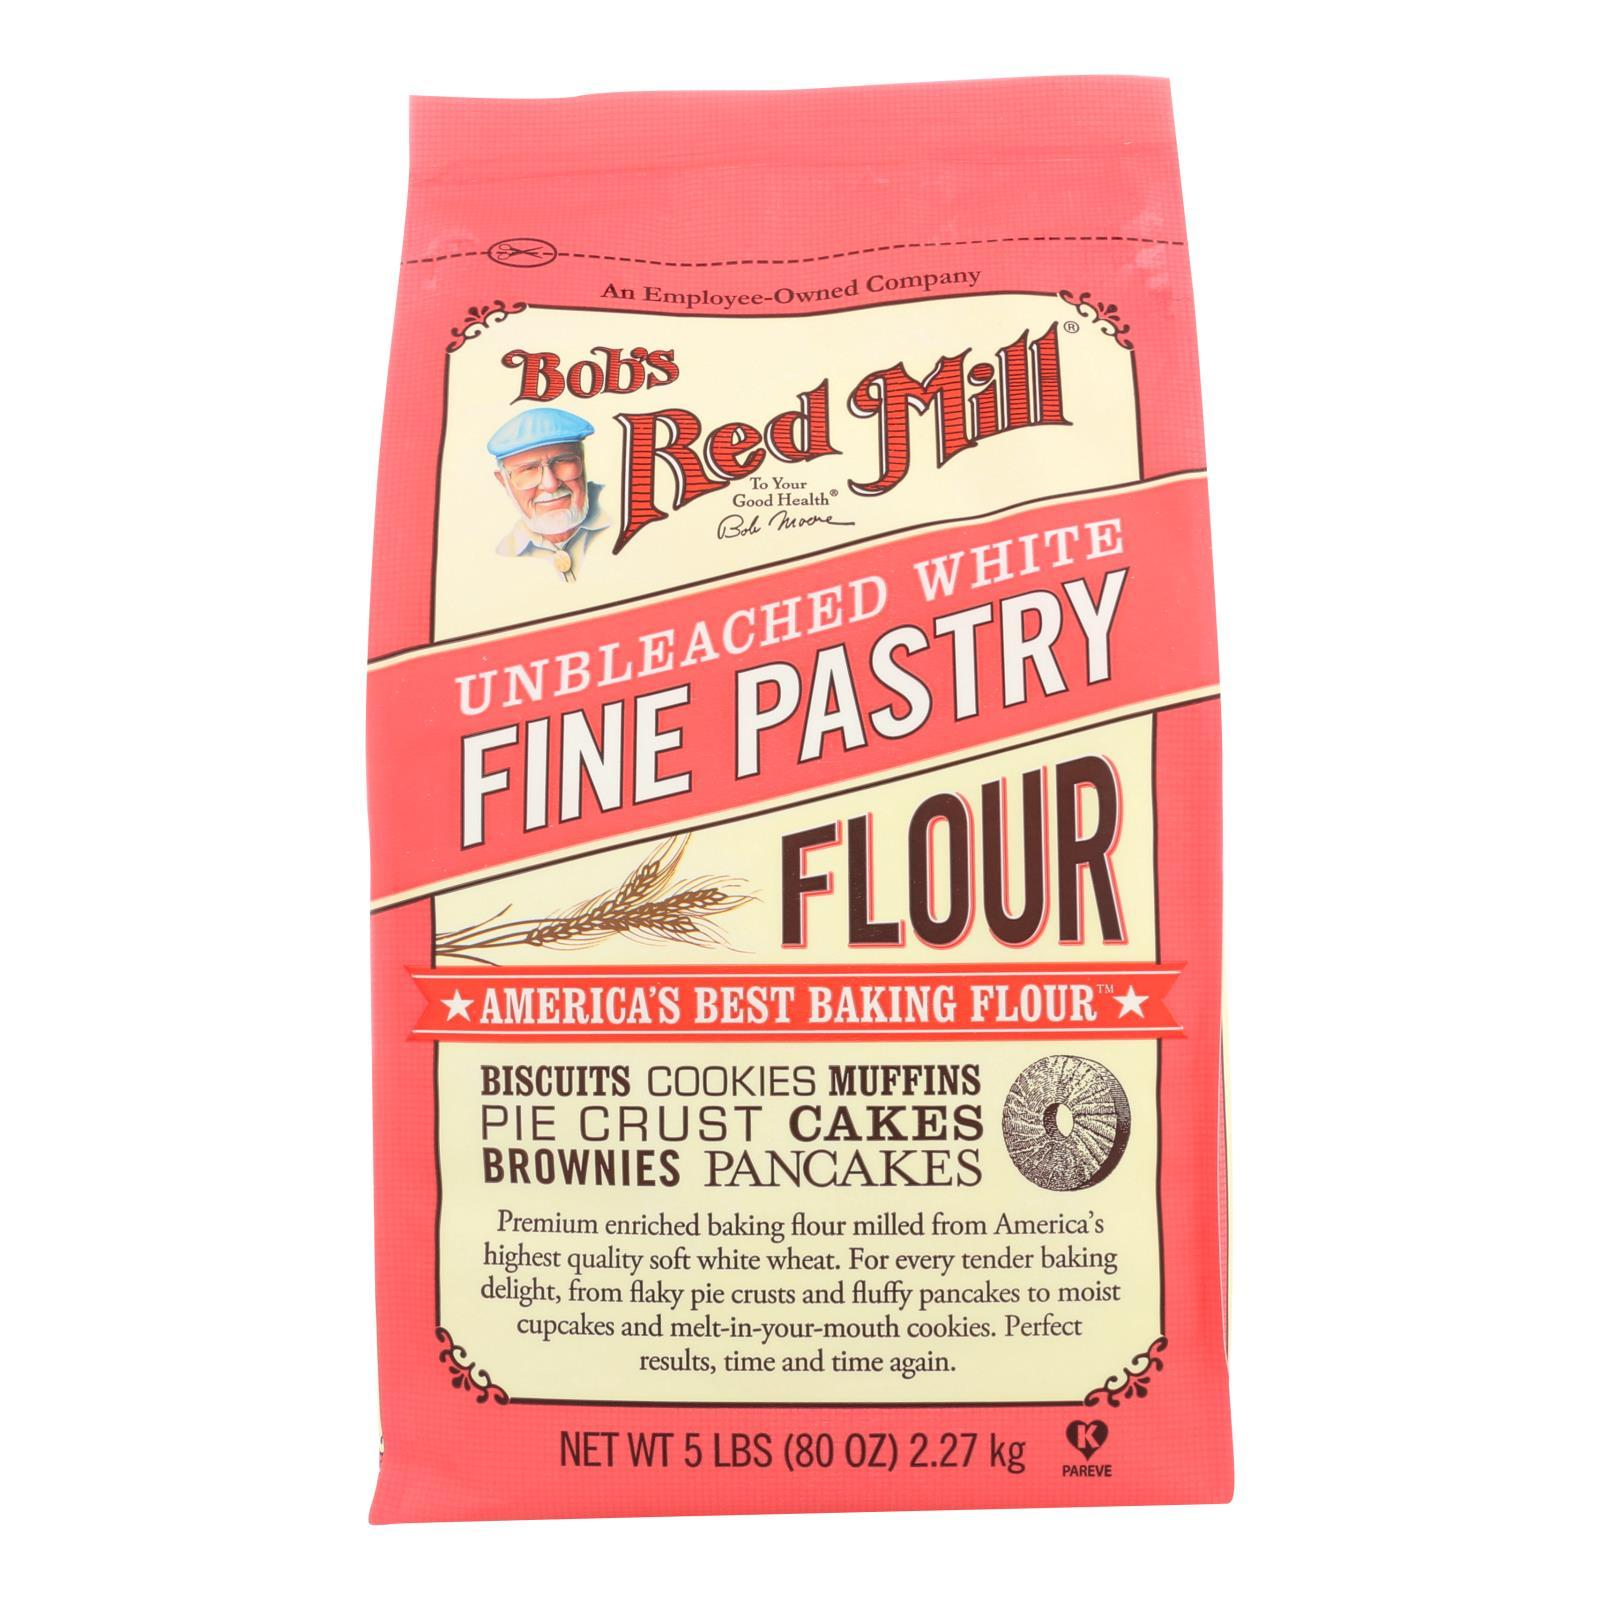 Bob's Red Mill - Unbleached White Fine Pastry Flour - 5 Lb - Case Of 4 - BeeGreen